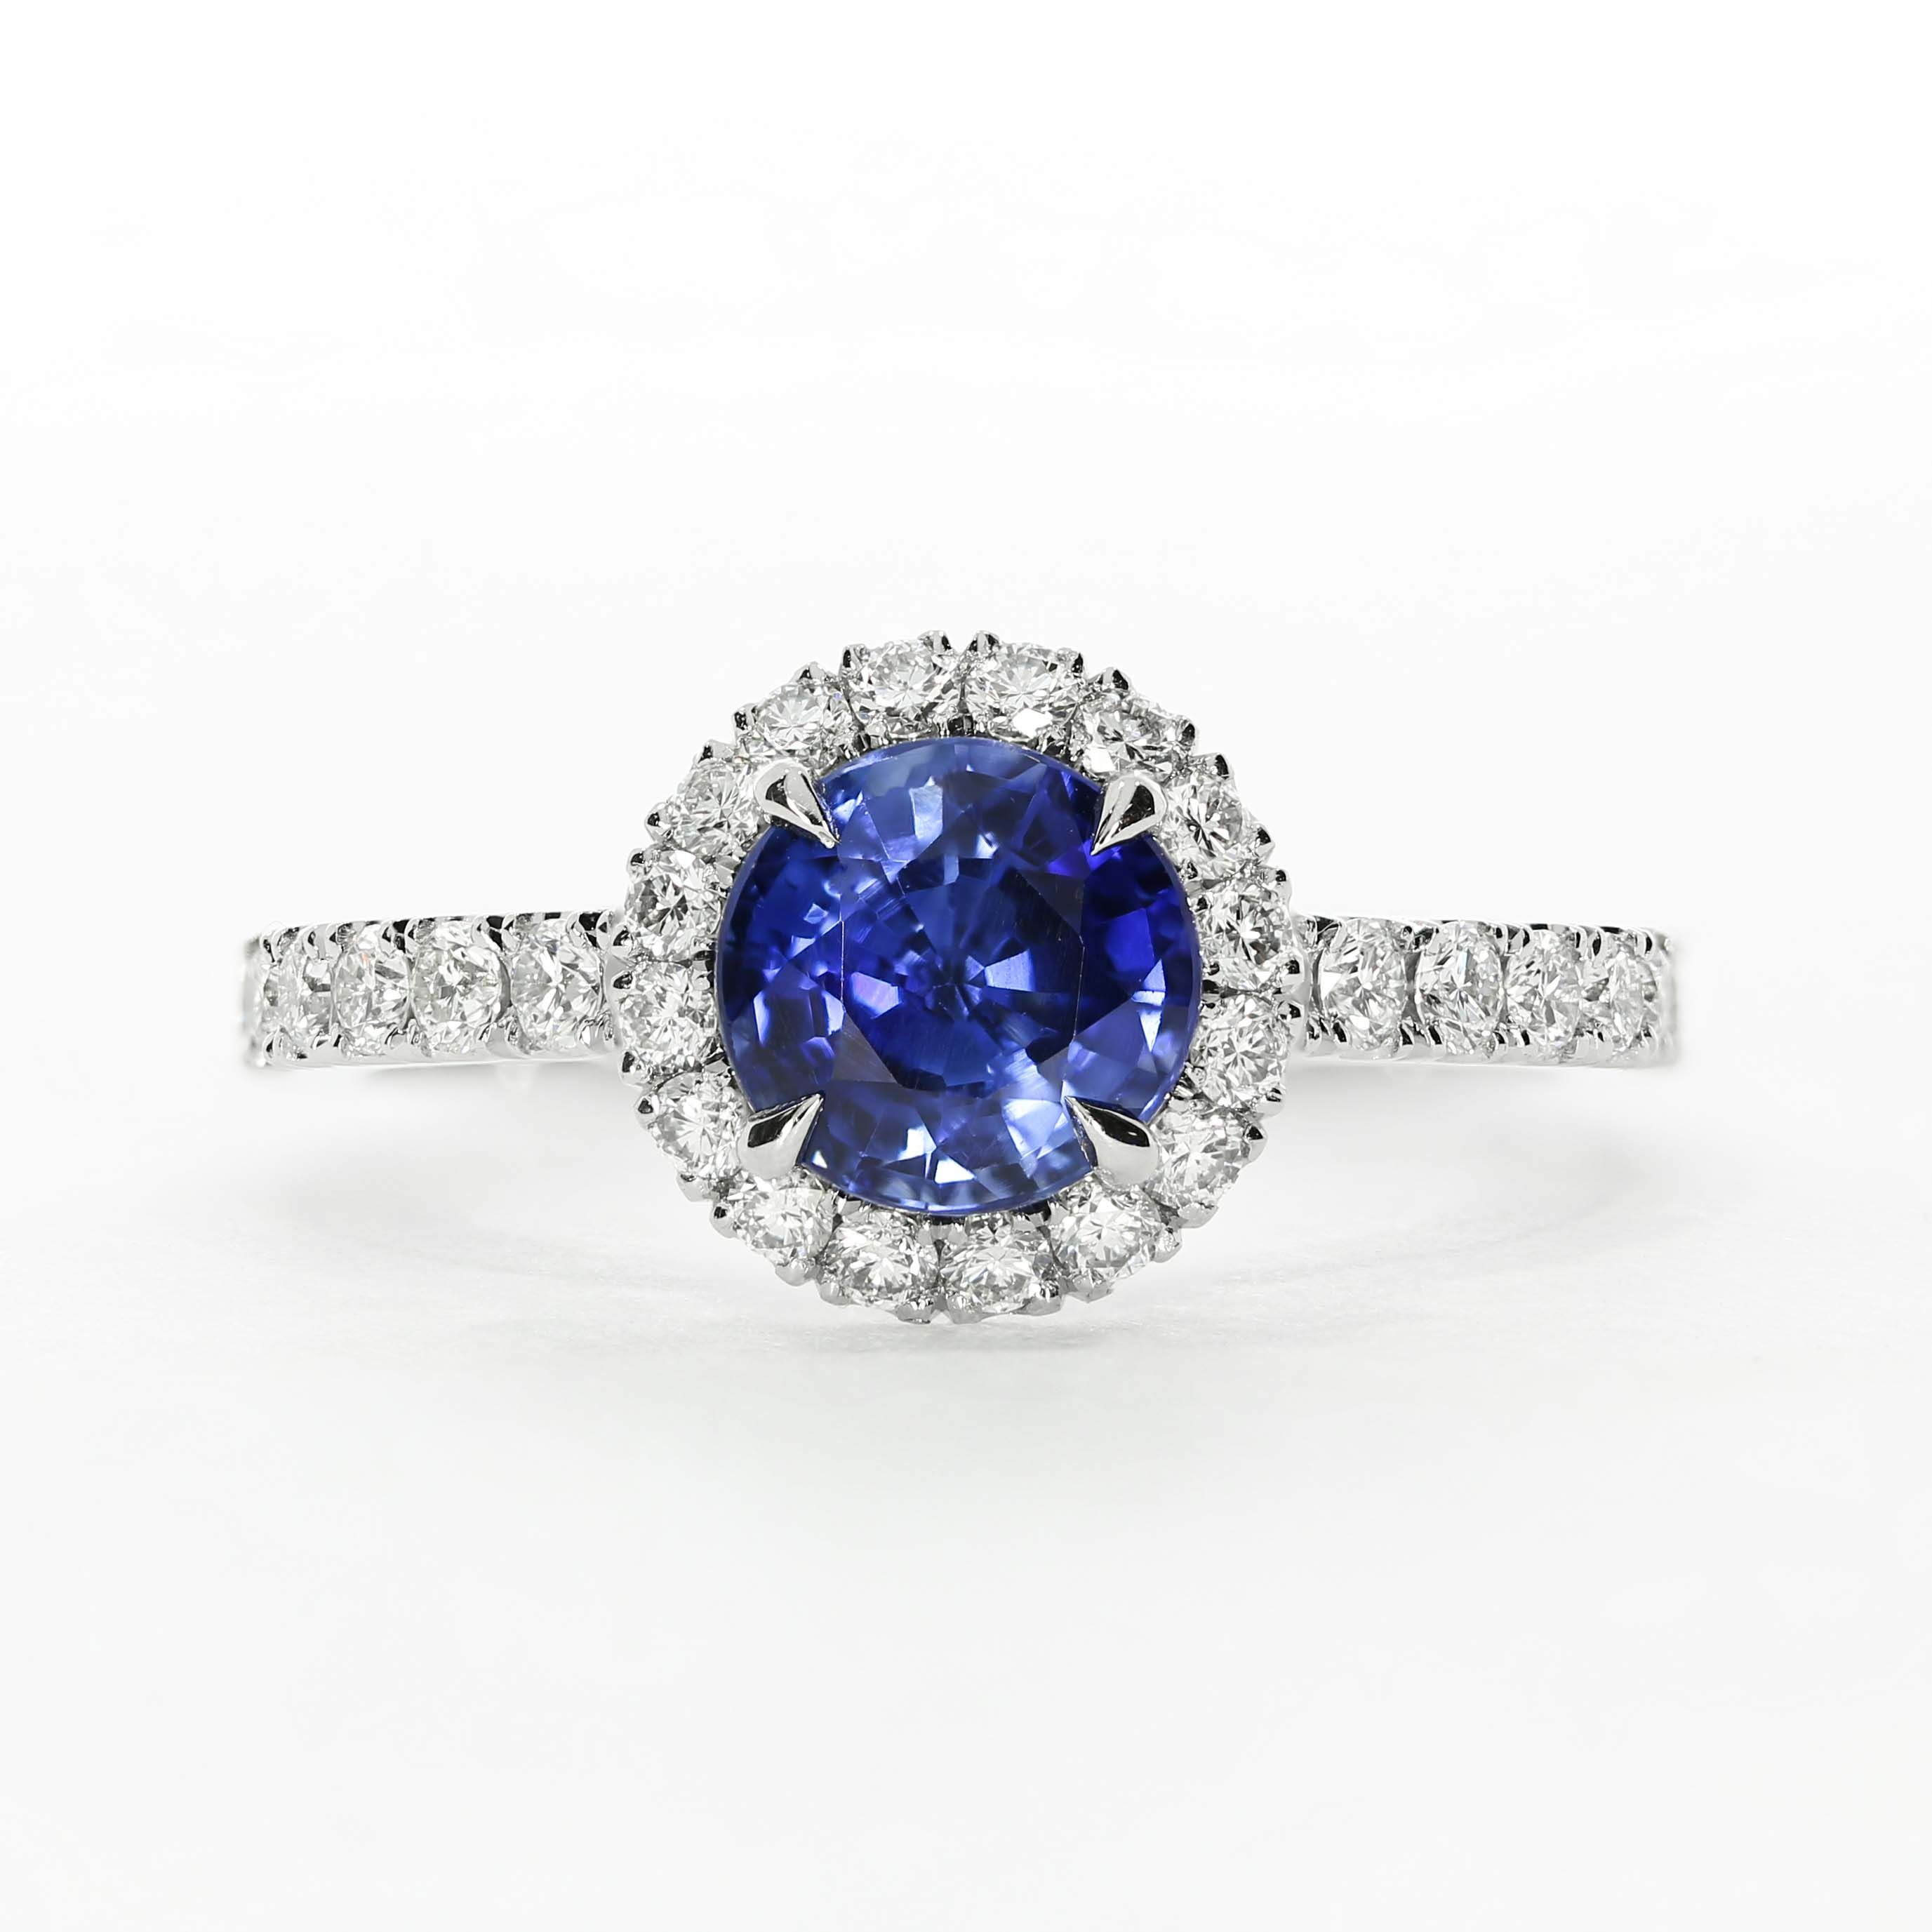 Our Classic Oberon Design The Perfect Sapphire Engagement Ring Also Available With A Di Bespoke Engagement Ring Engagement Rings Sapphire Diamond Engagement